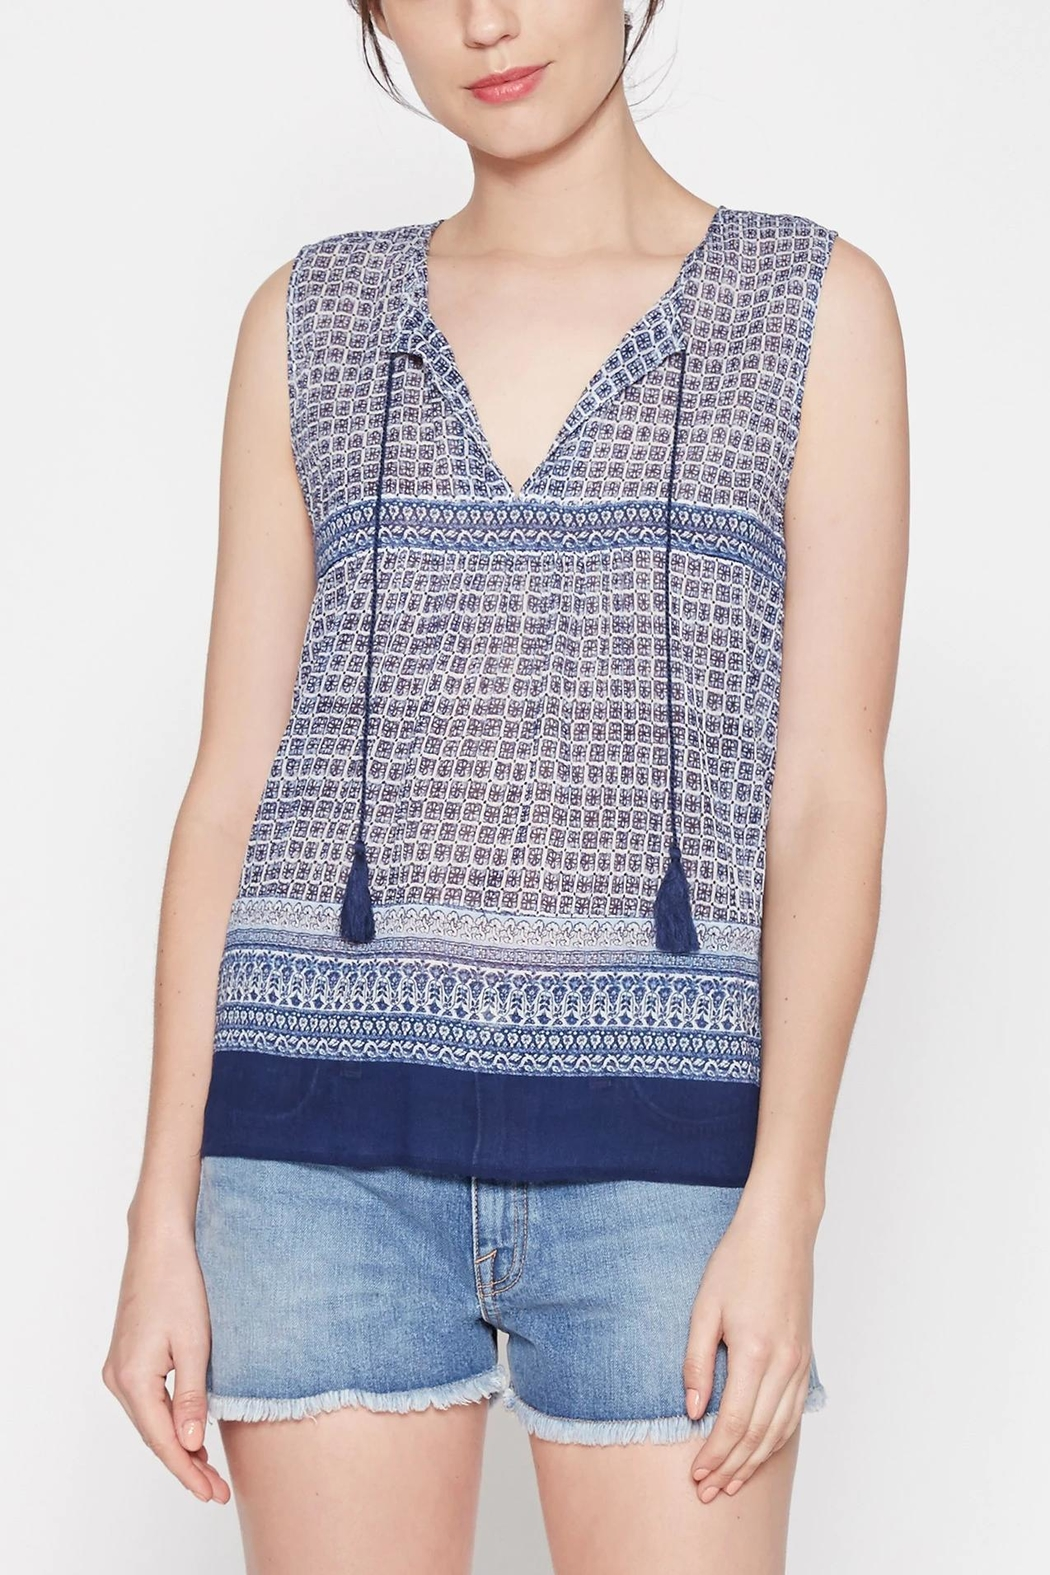 Joie Adralina Sleeveless Blouse - Front Cropped Image